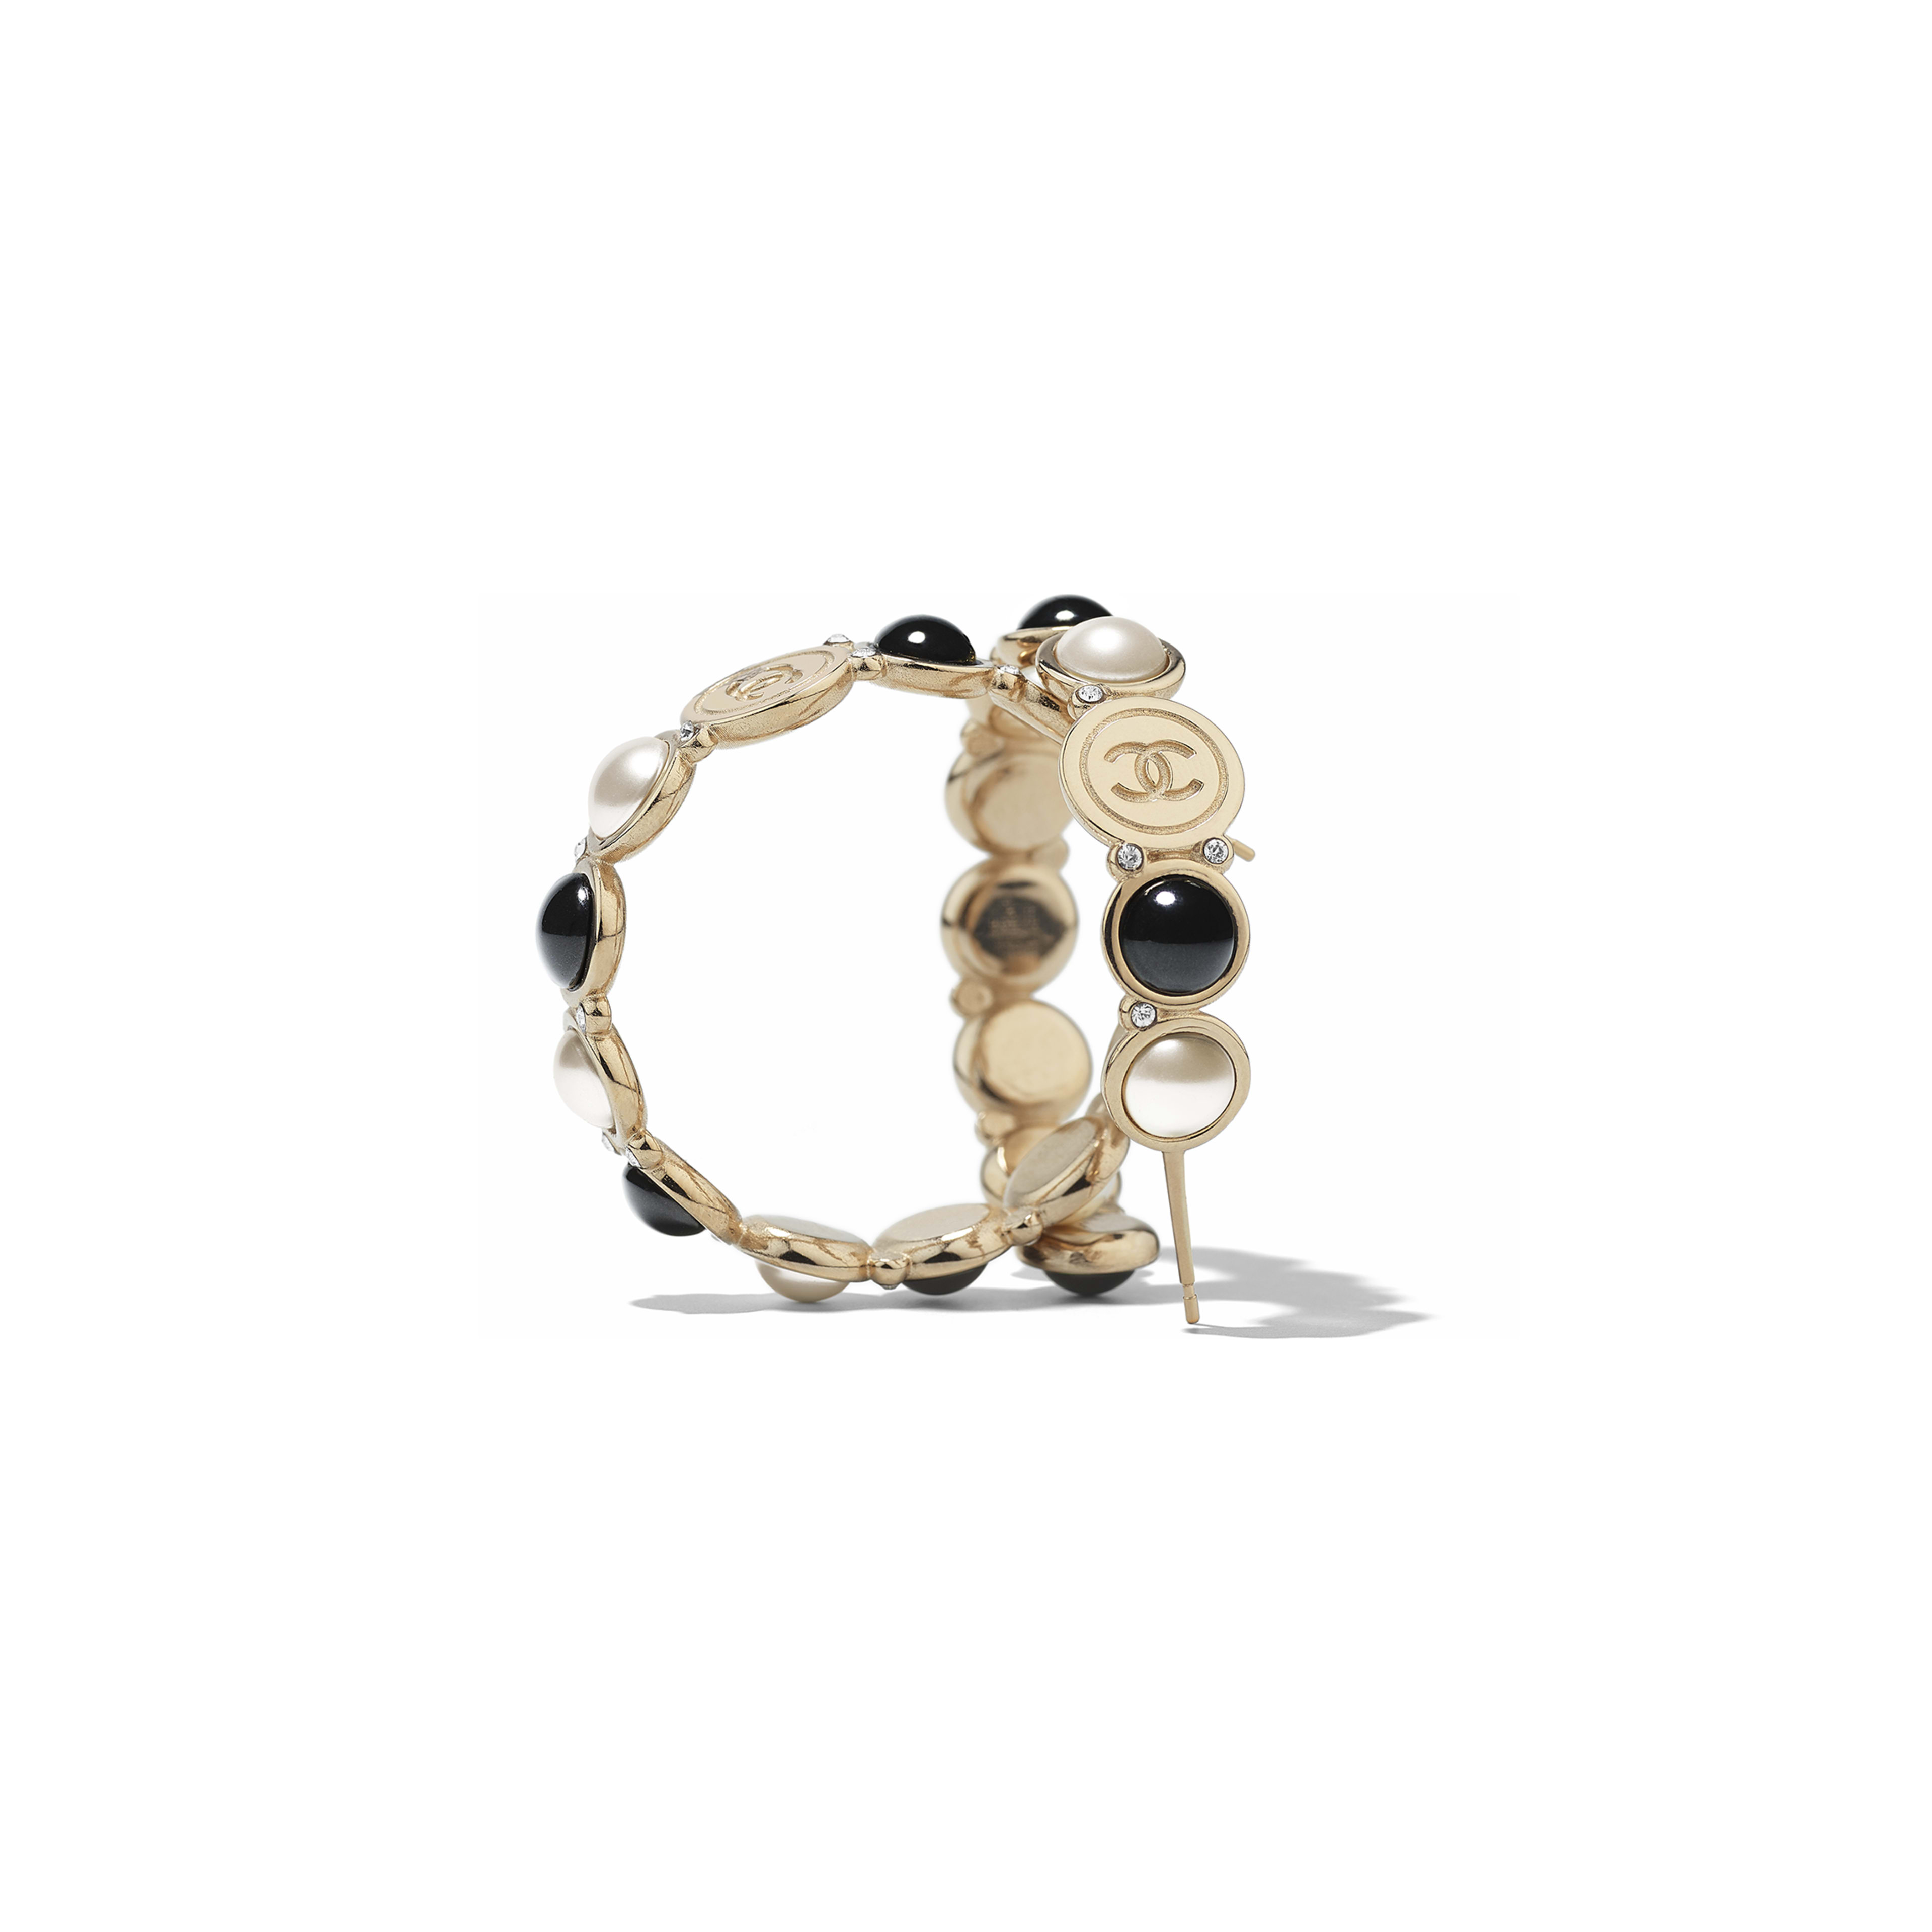 Earrings - Gold, Pearly White, Black & Crystal - Metal, Glass Pearls, Imitation Pearls & Diamanté - Alternative view - see full sized version